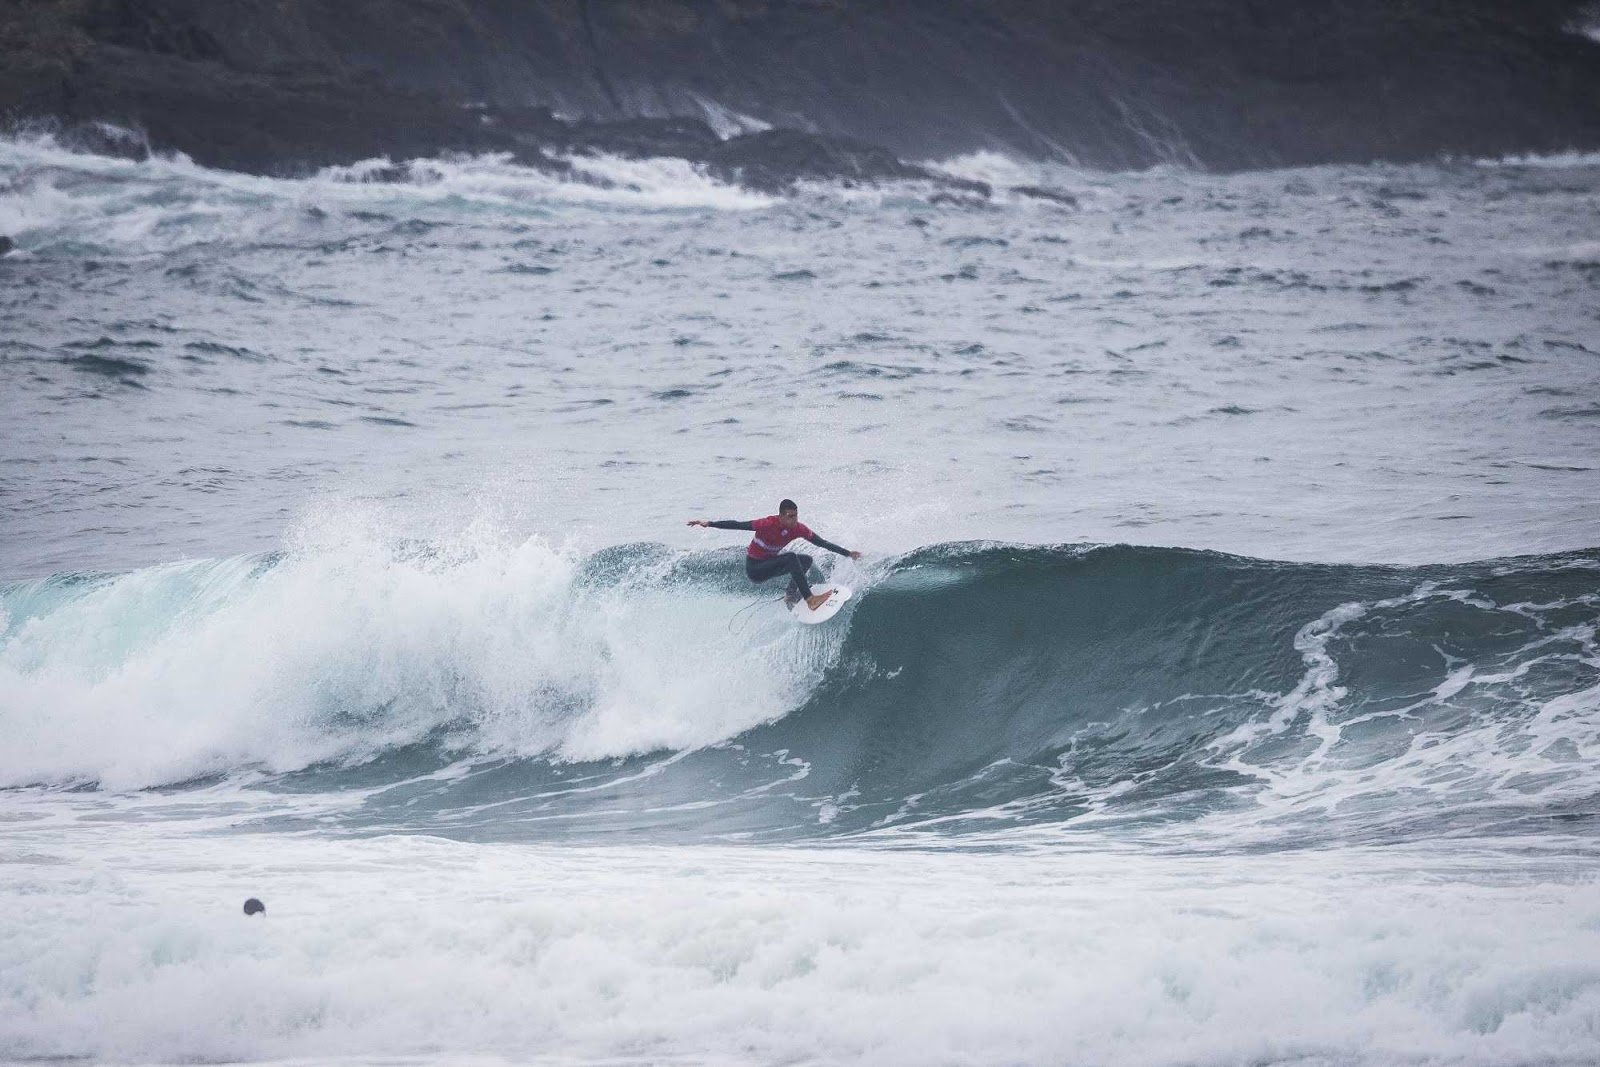 Pull Bear Pantin Classic Galicia Pro 2018 Highlights Pumping Surf for Opening Day of Men s QS